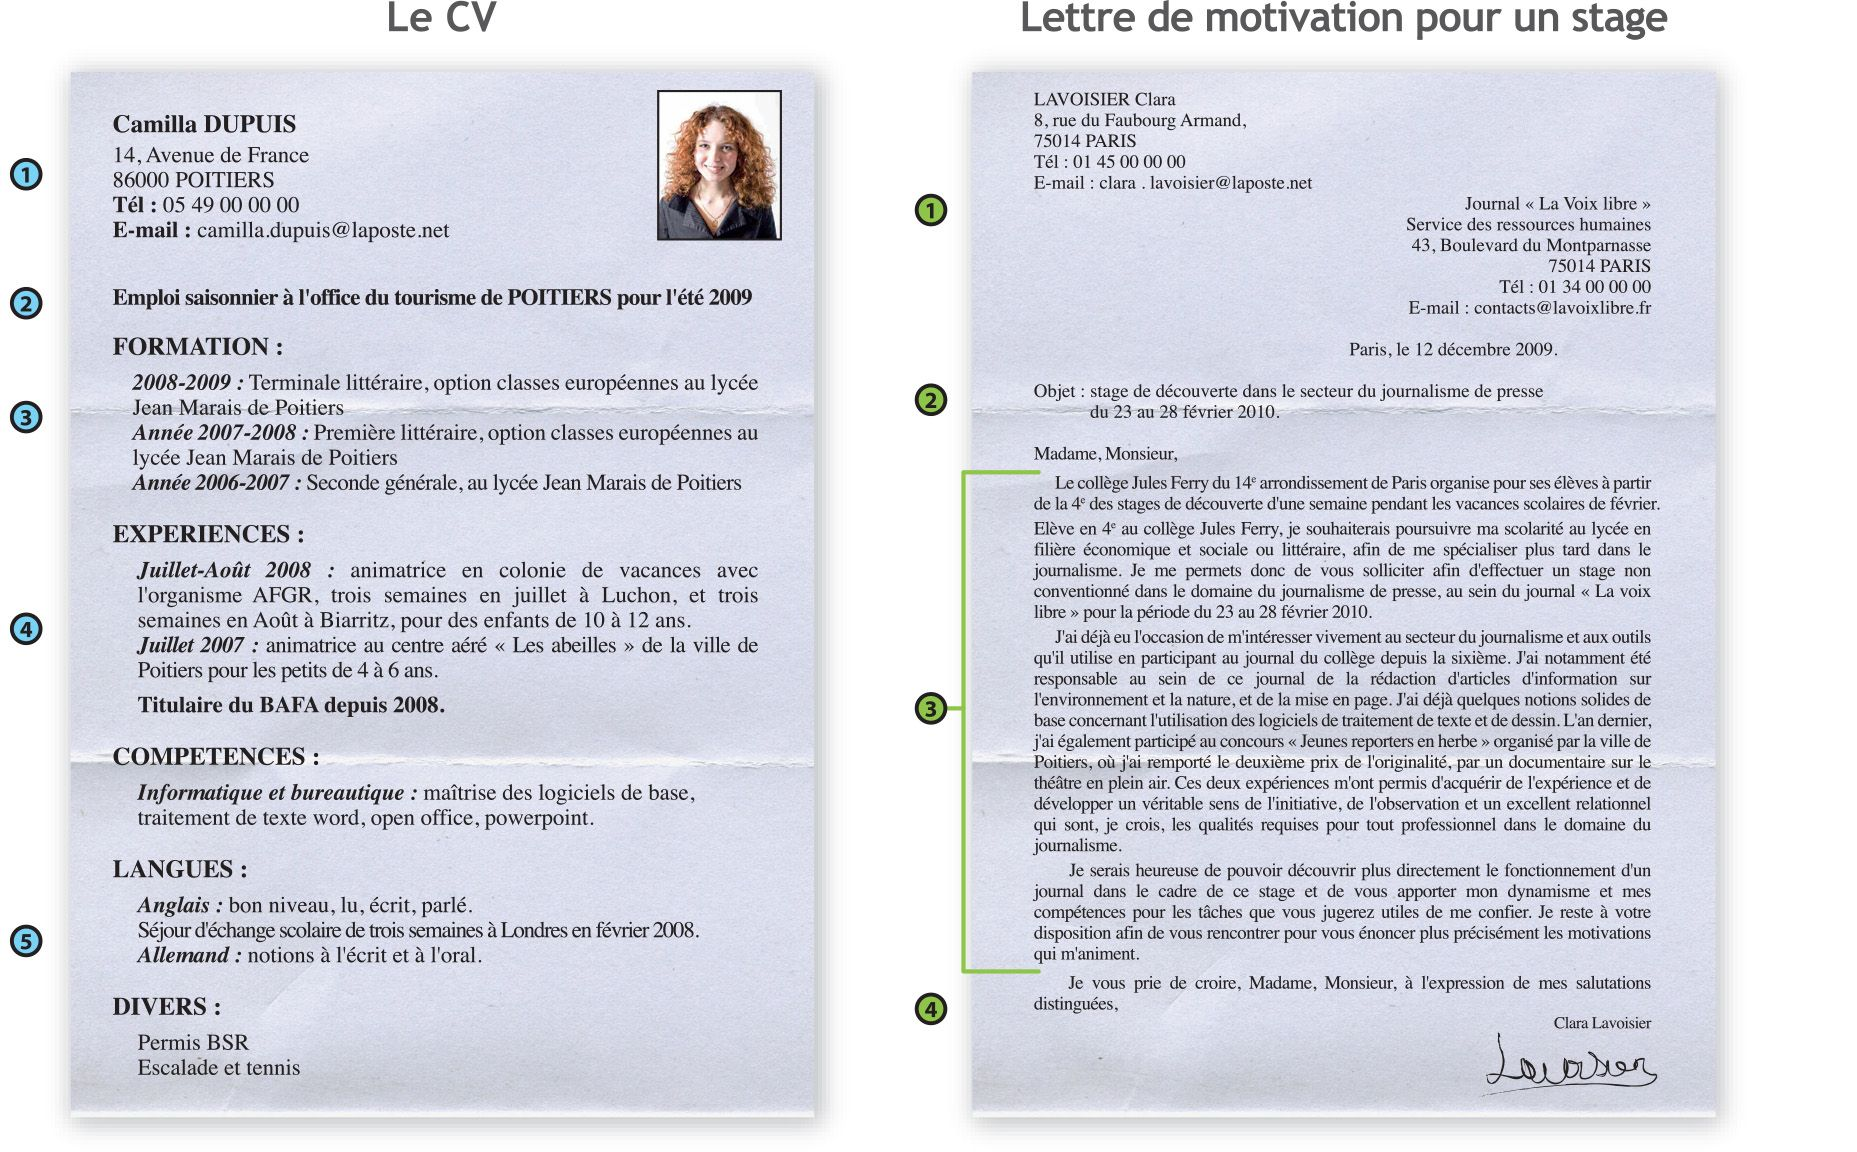 mail de cv et lettre de motivation